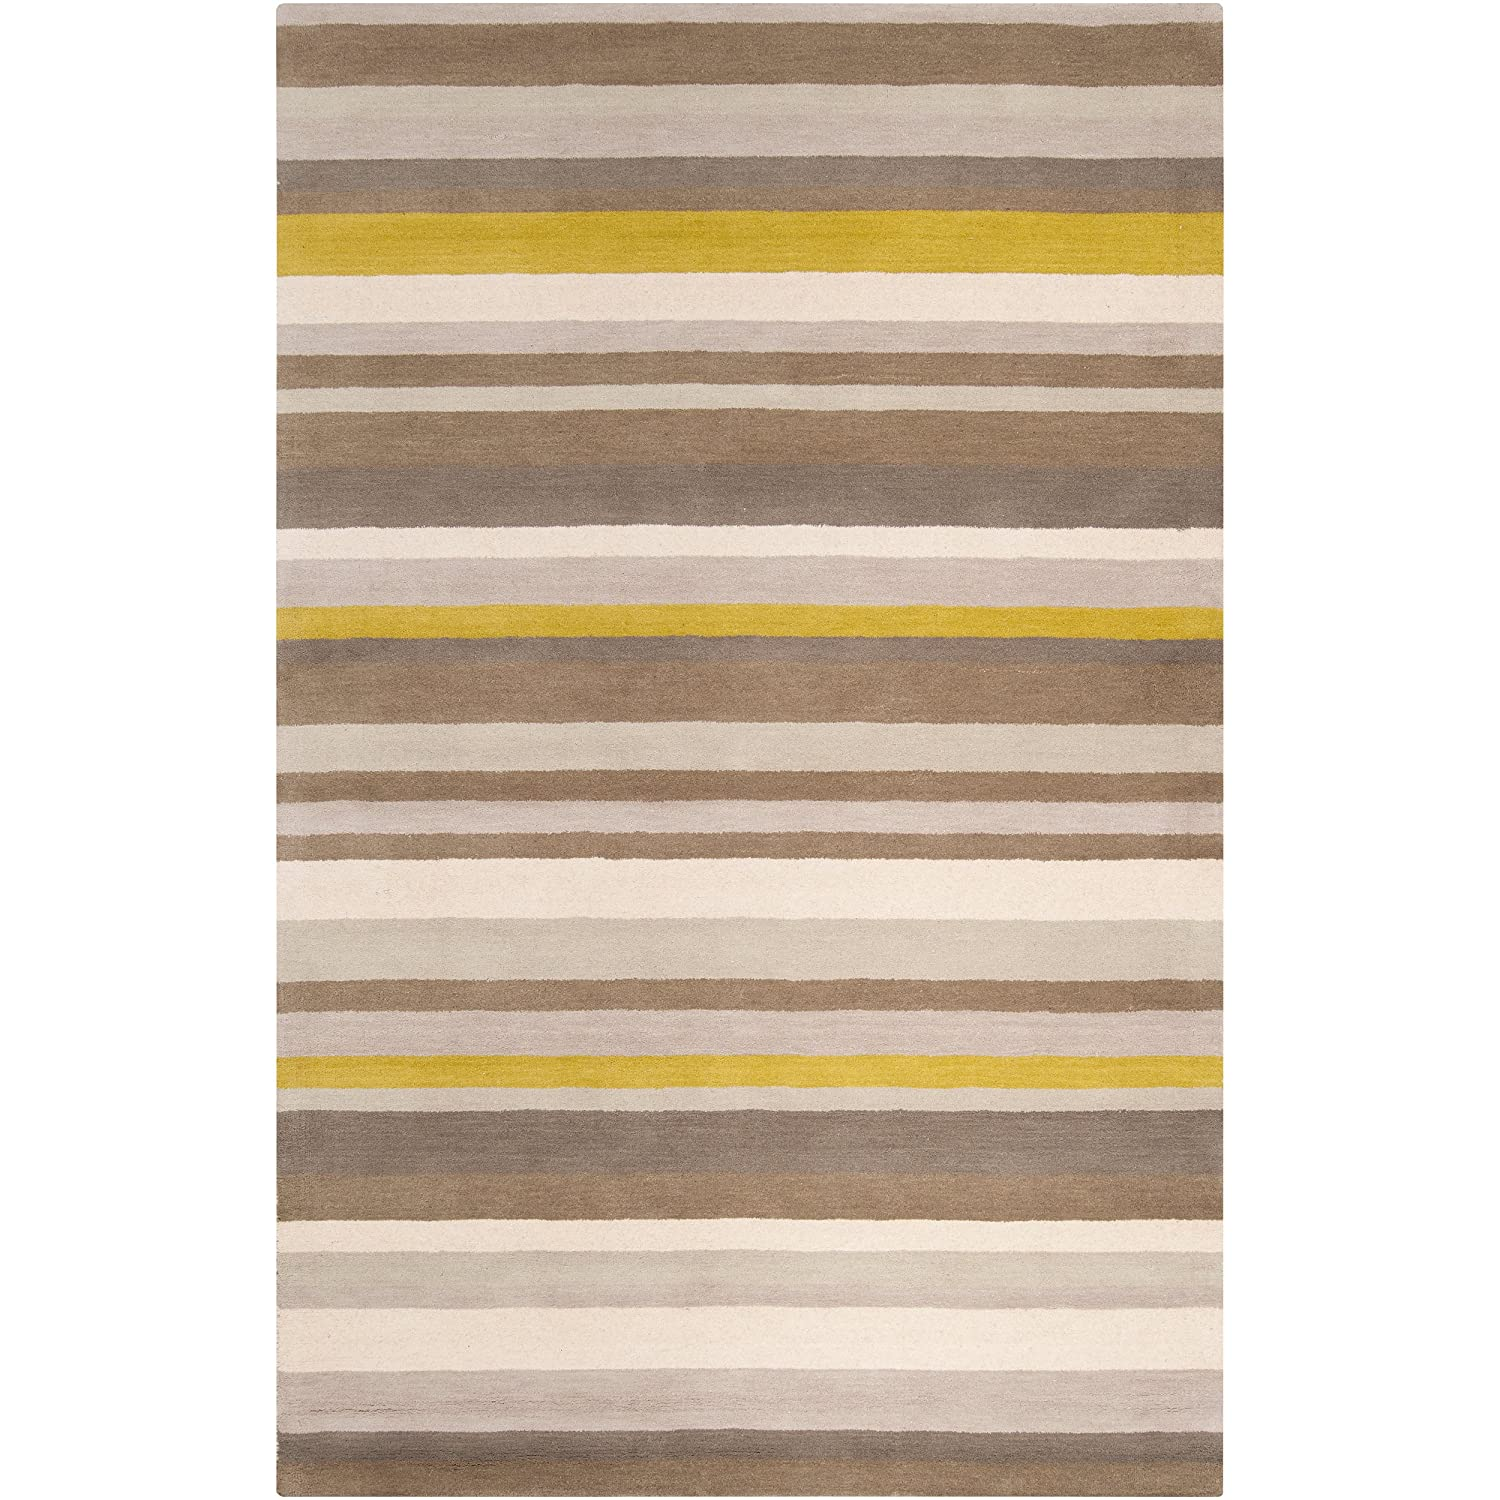 Attractive 10 Foot Square Rug Part - 14: Amazon.com: Angelo:HOME By Surya Madison Square MDS-1009 Transitional Hand  Loomed 100% Wool Silver Cloud 8u0027 X 10u0027 Geometric Area Rug: Kitchen U0026 Dining